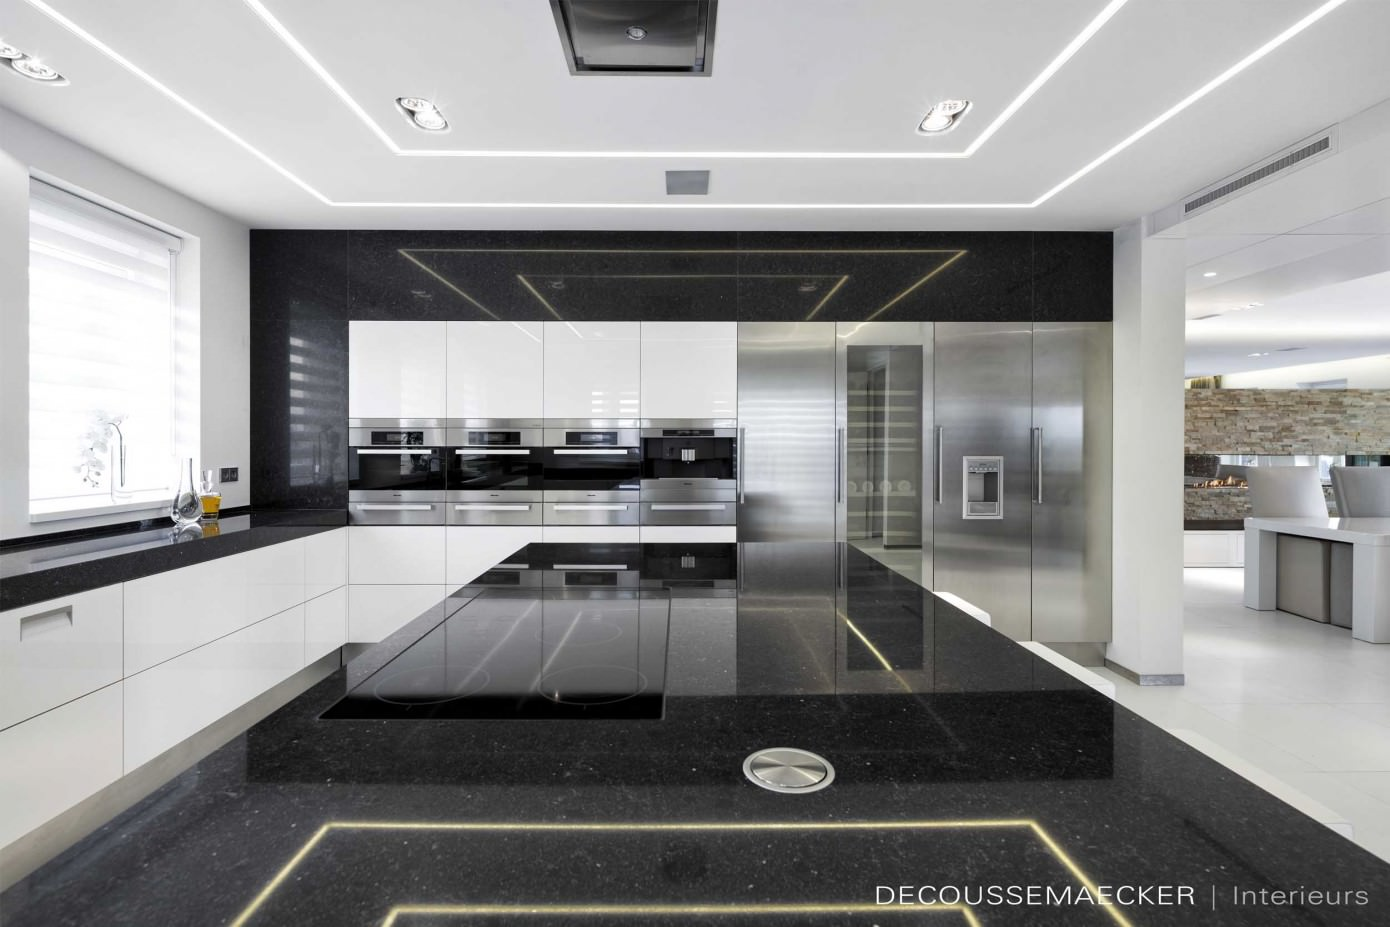 Private Residence by Guido Decoussemaecker